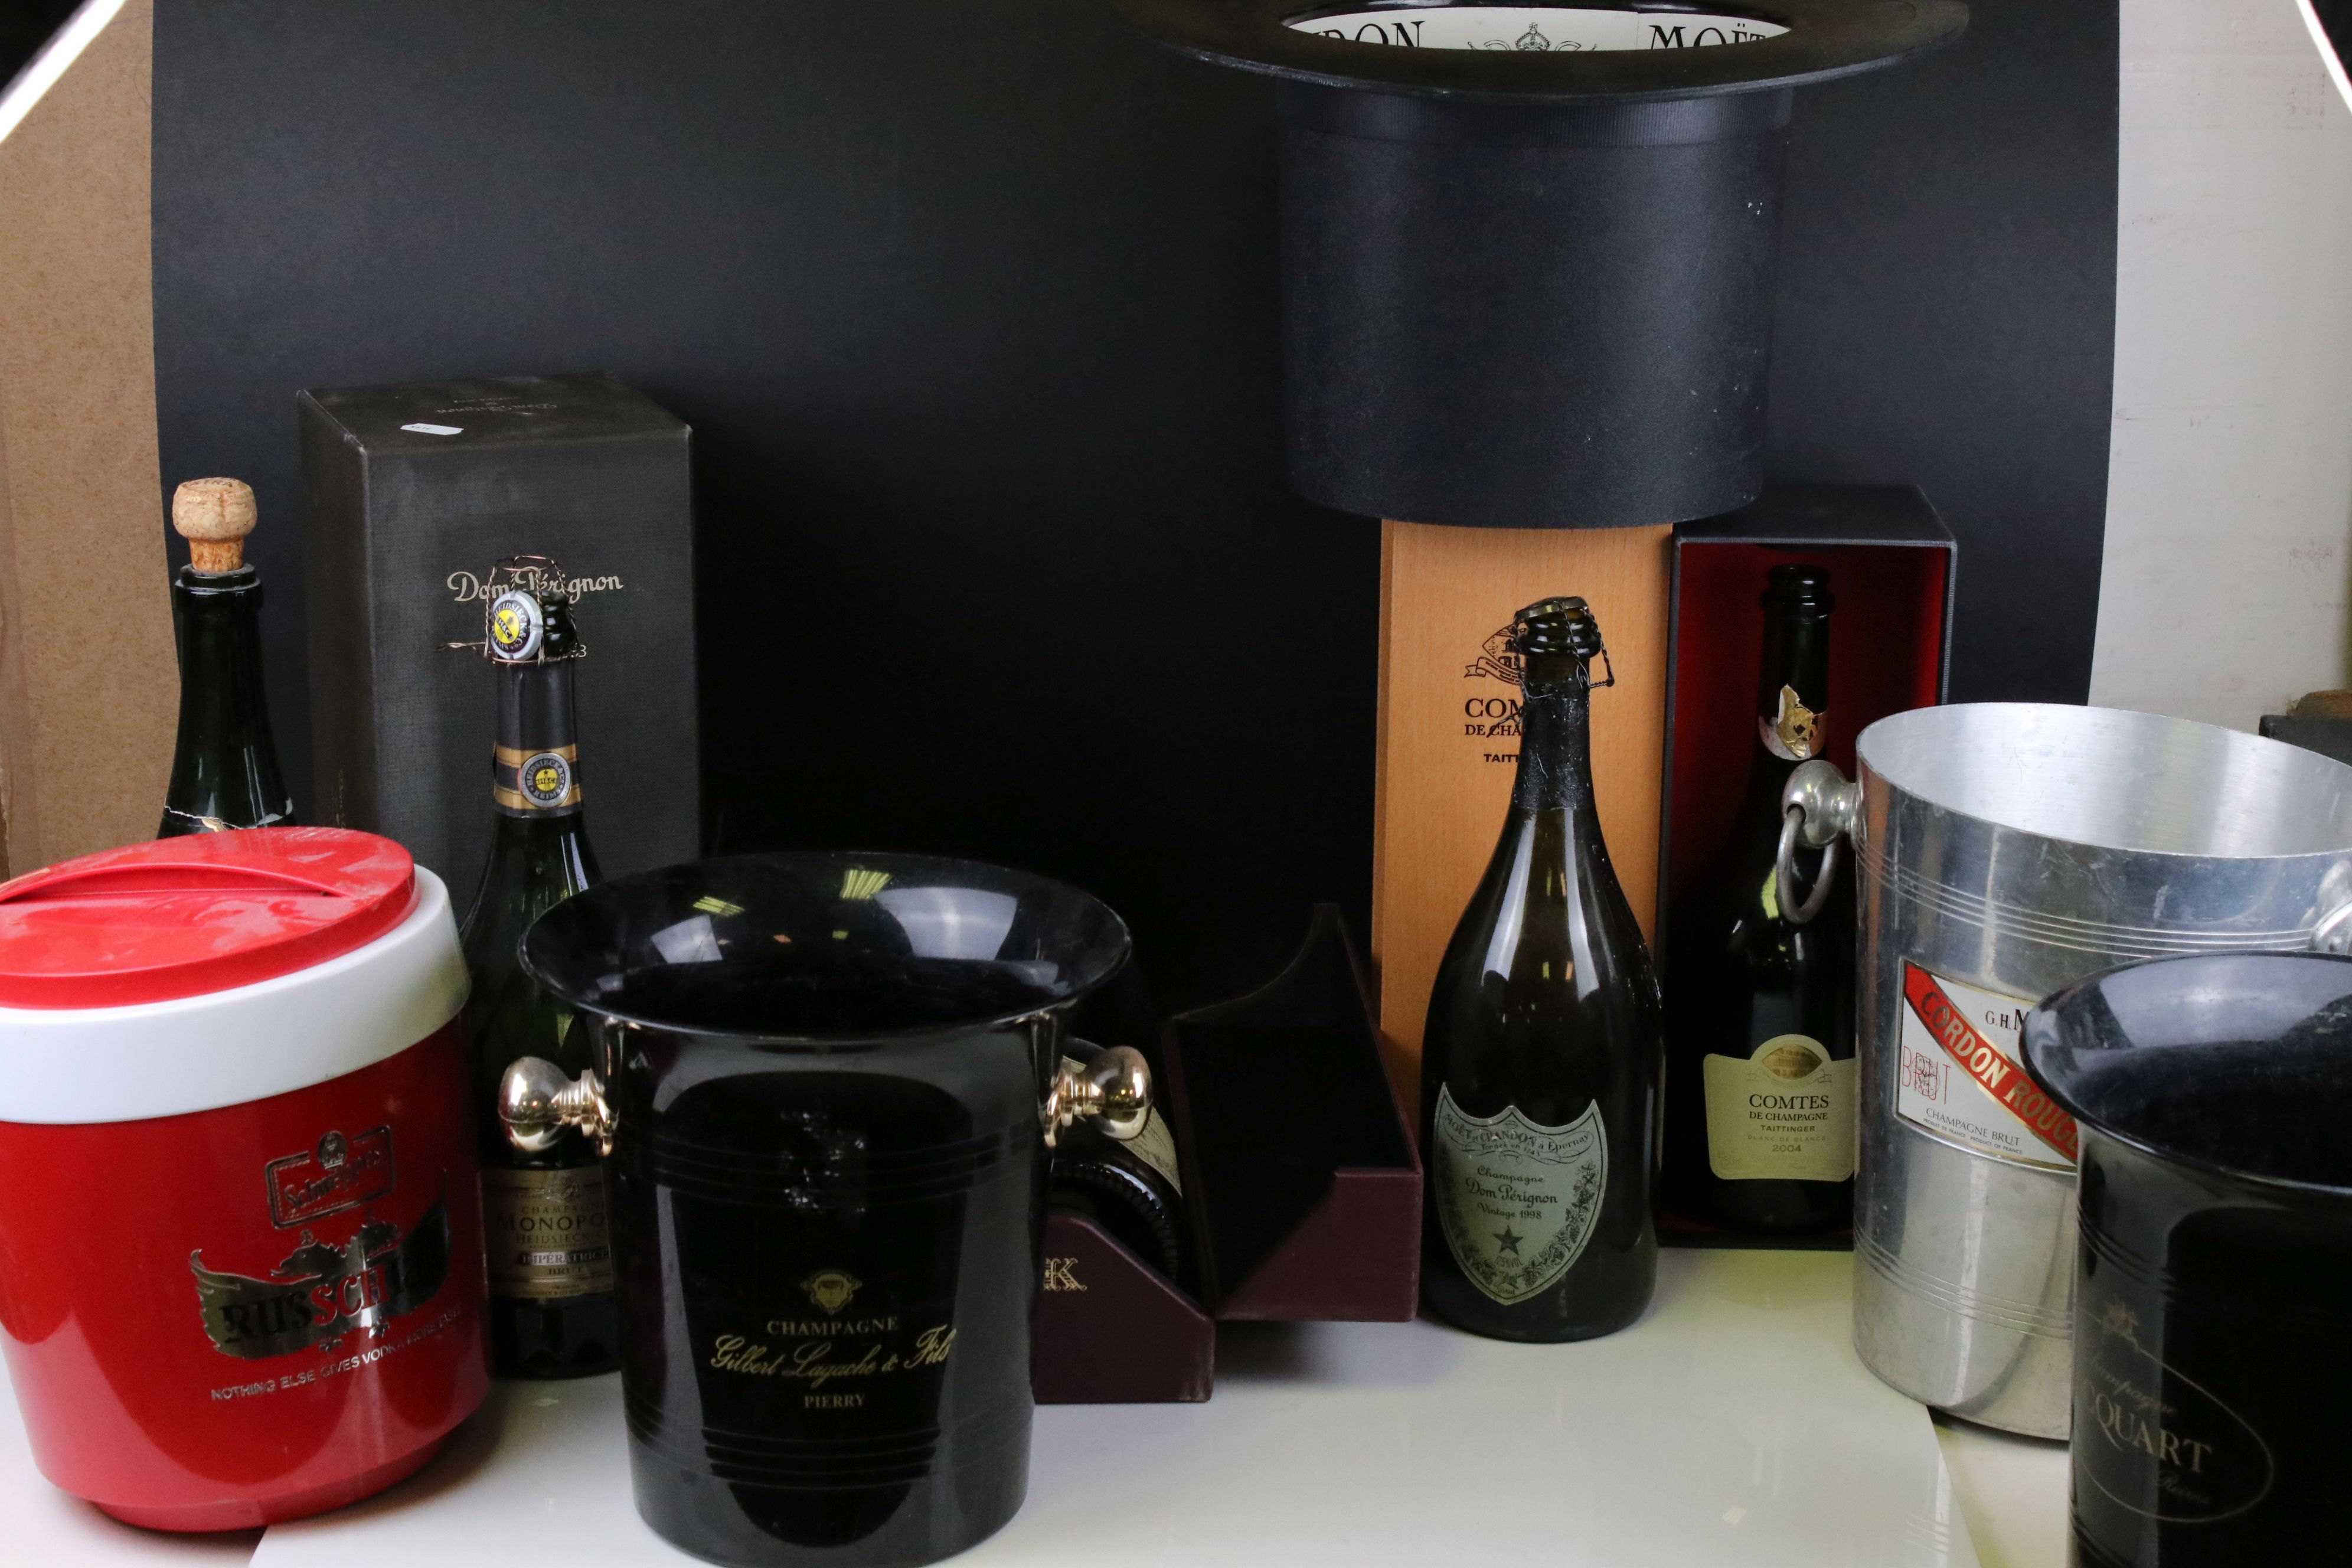 Moet & Chandon Top Hat Ice Bucket together with Five Further Ice Buckets, Moet & Chandon Glass